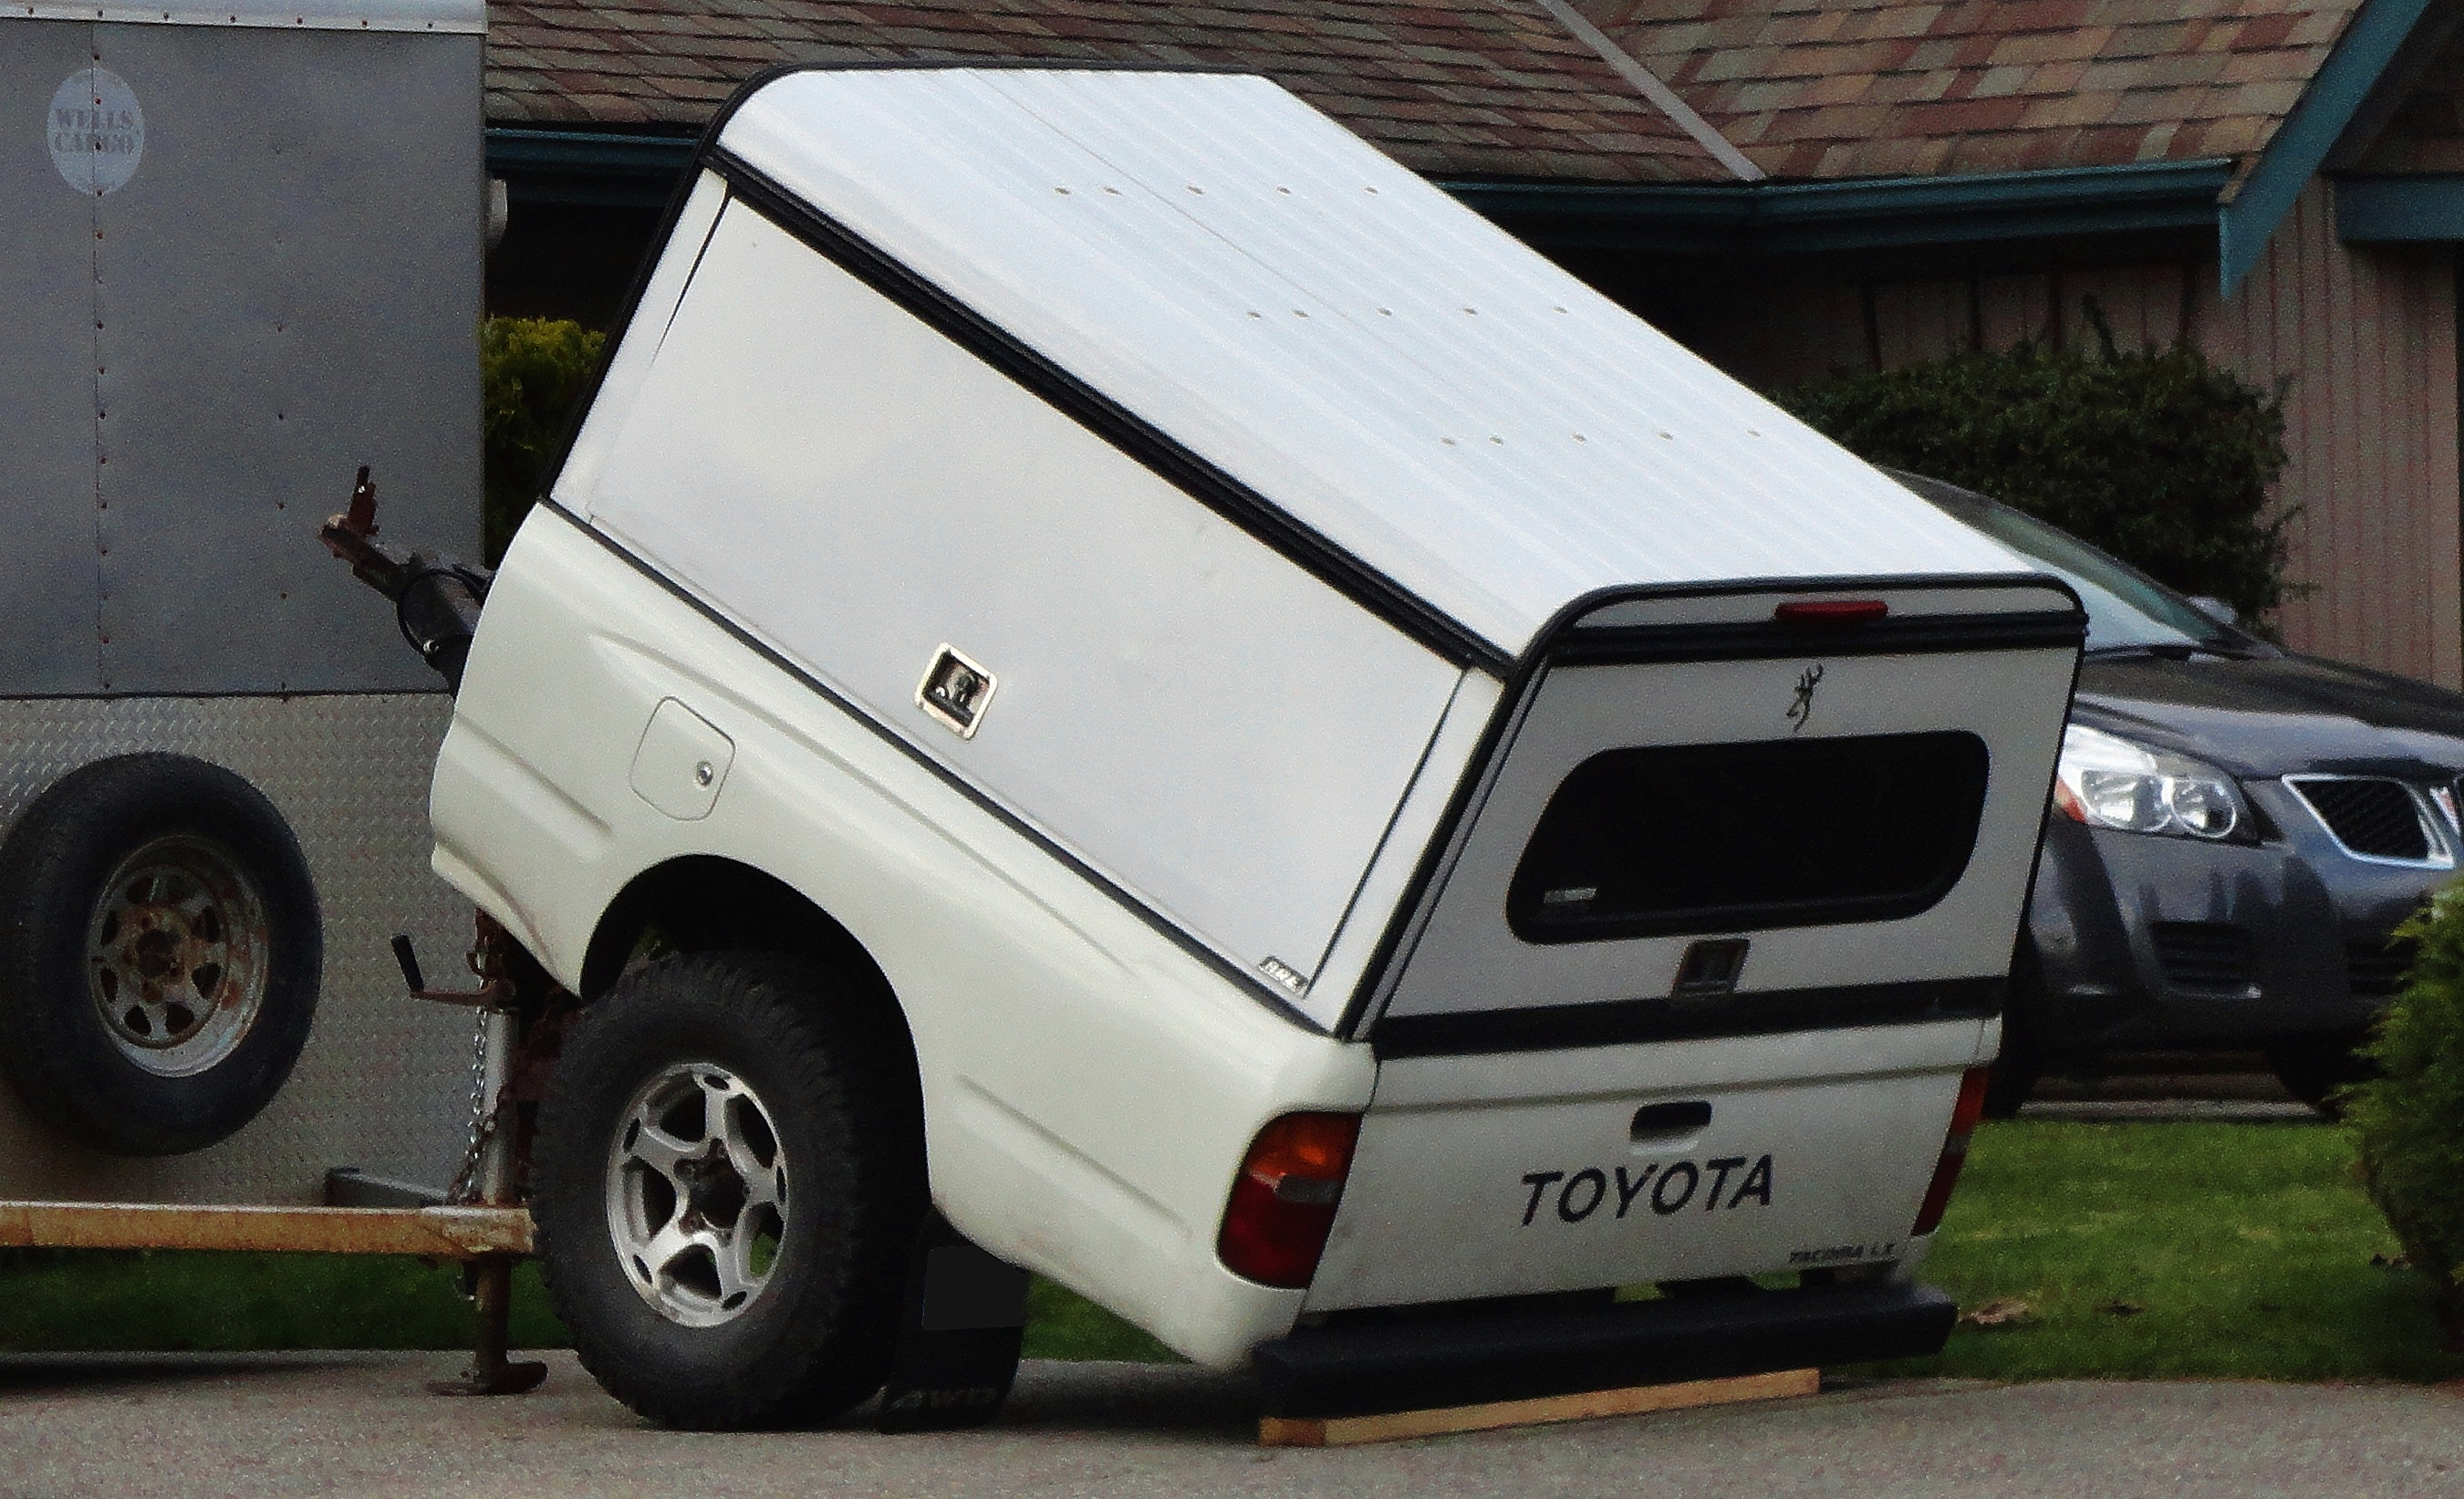 Toyota Tacoma Pickup Truck Bed Trailer | Flickr - Photo ...